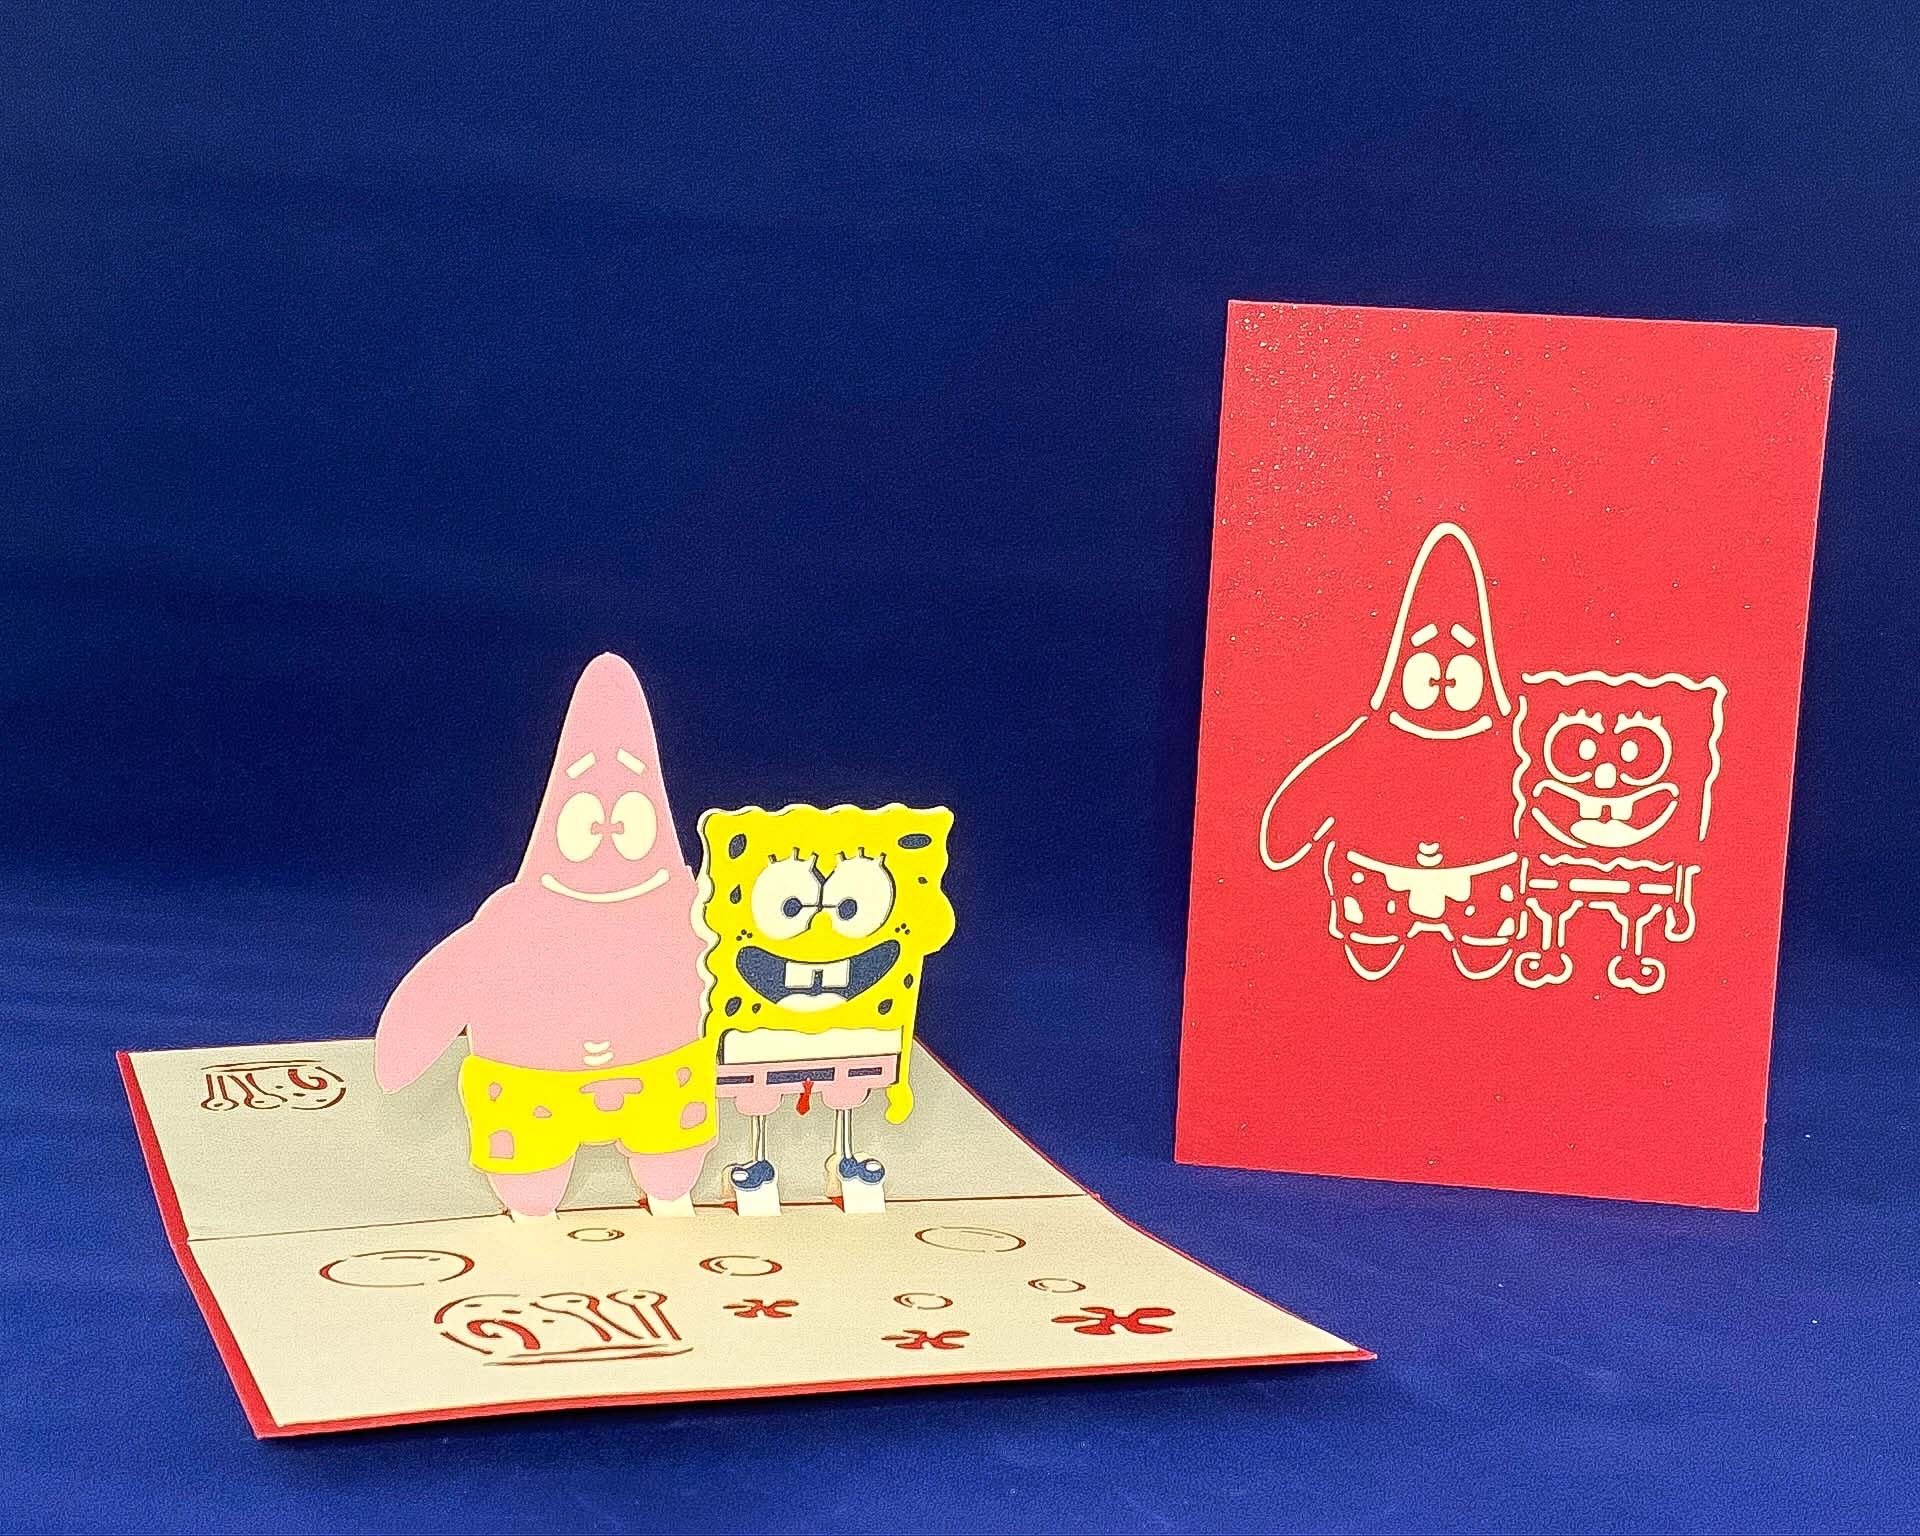 Tian's Gifts: 'Sponge Bob' Characters 'Pop Up' Greetings Card